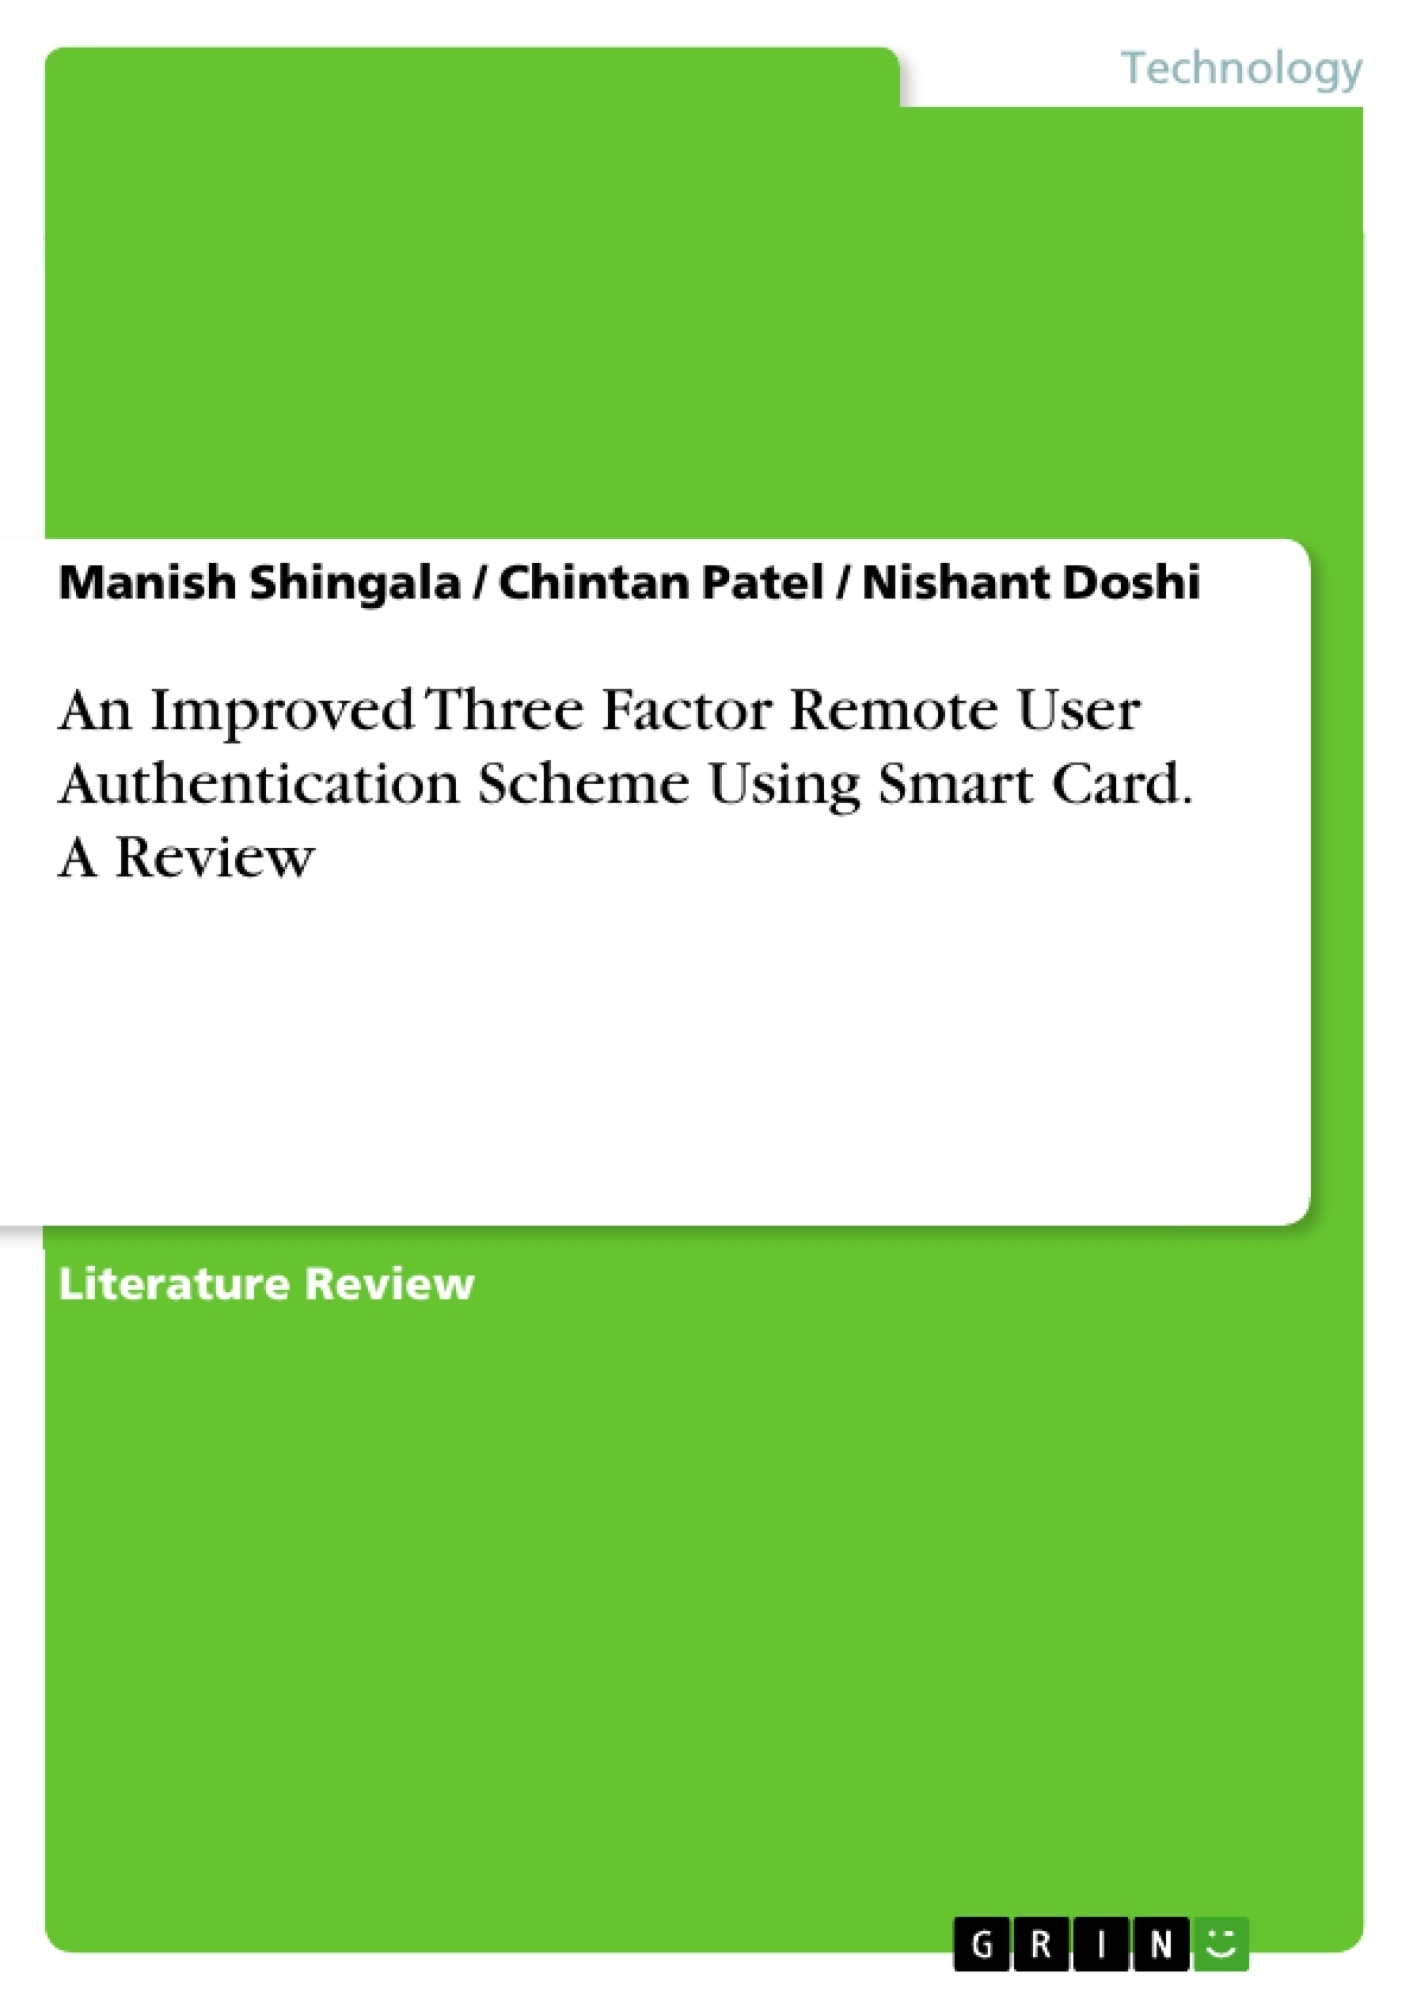 thesis about smartcard An analysis of the benefits of smart cards as a mode of payment data transmission  more essays like this: smart card benefits, mode of payment, smart card advantages.